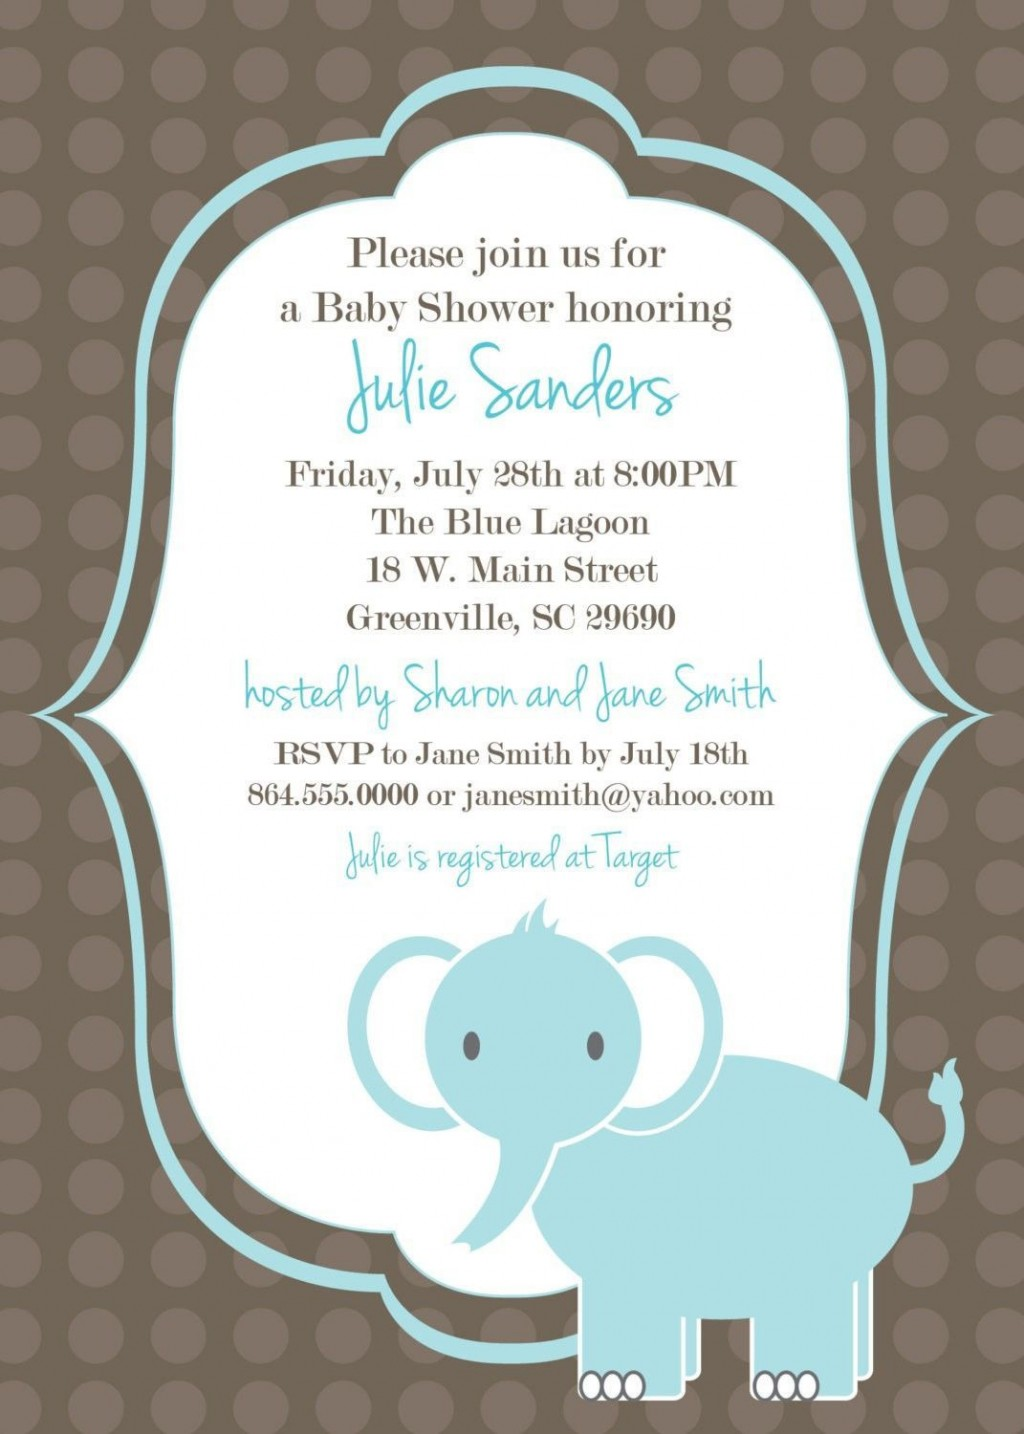 004 Unusual Baby Shower Invitation Free Template Picture  Templates Online Printable E-invitation Card Design DownloadLarge